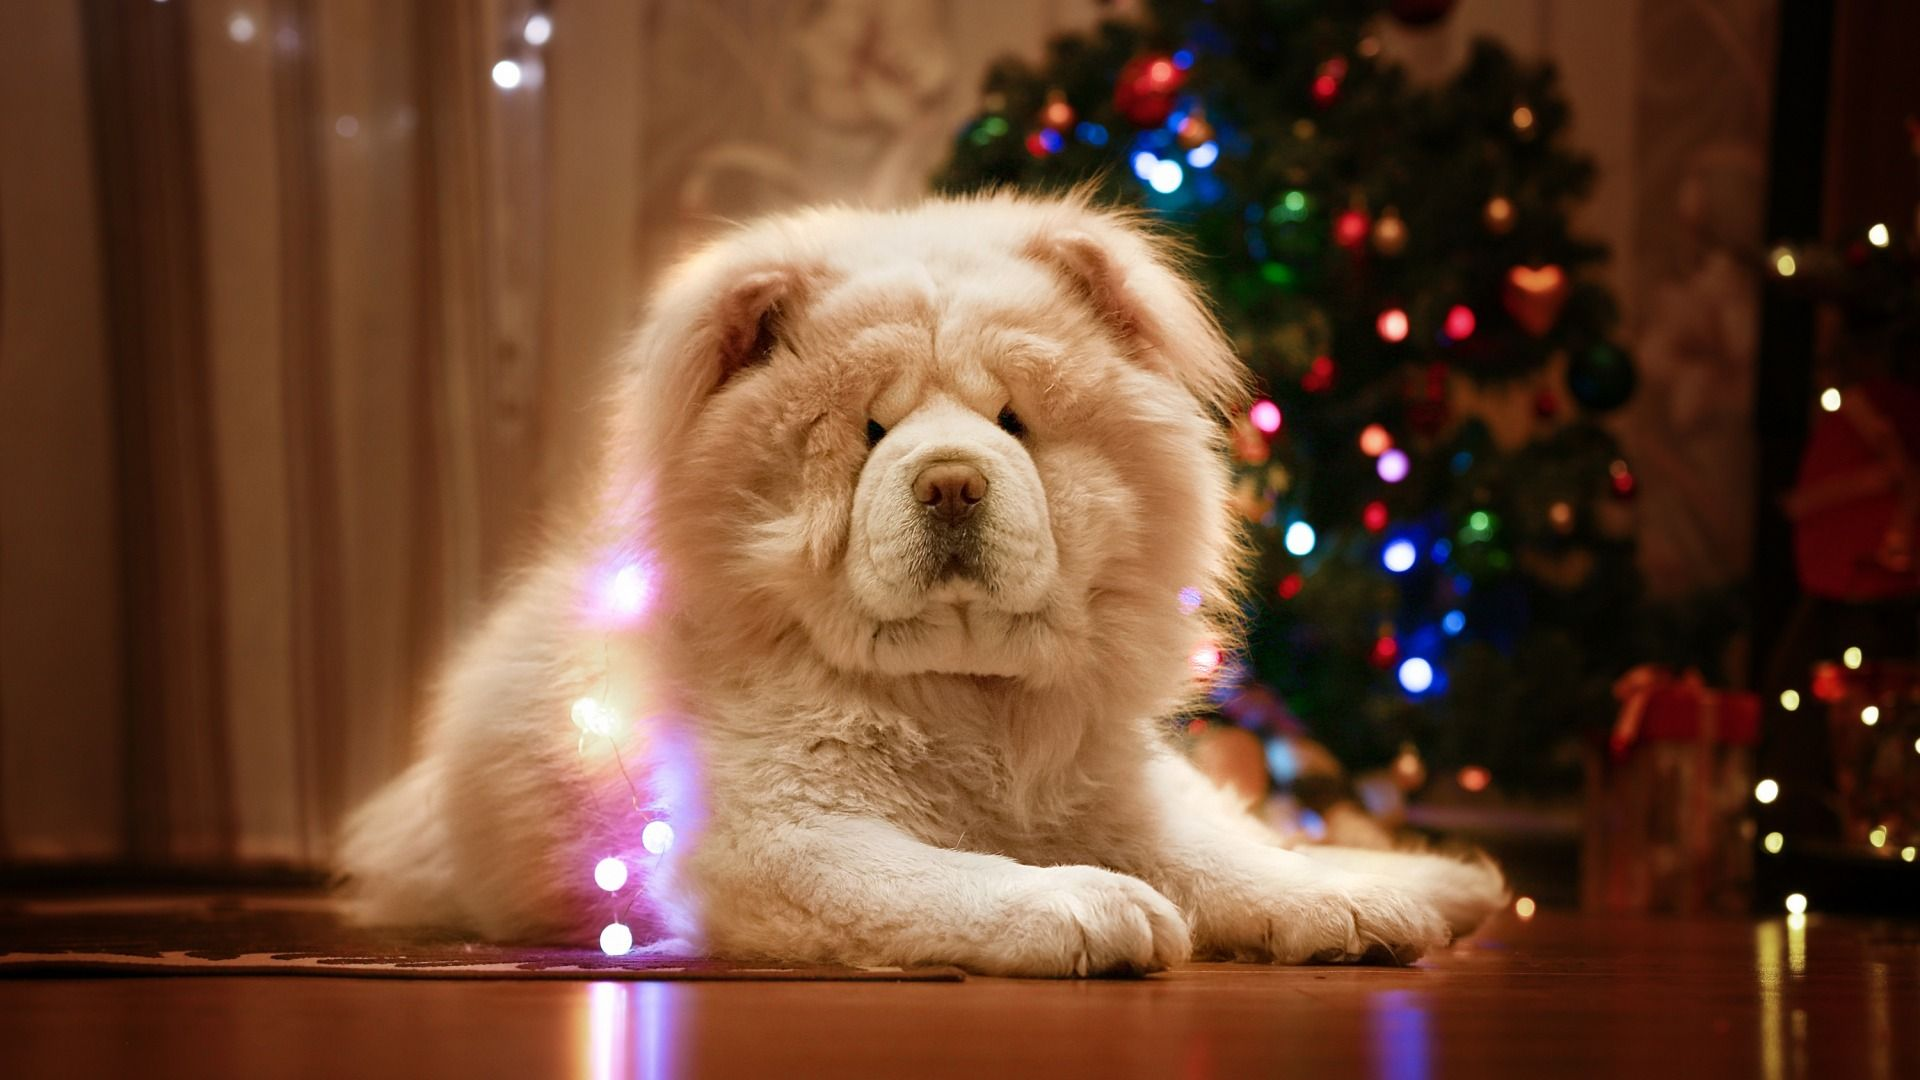 New Photos Of The Chow Chow